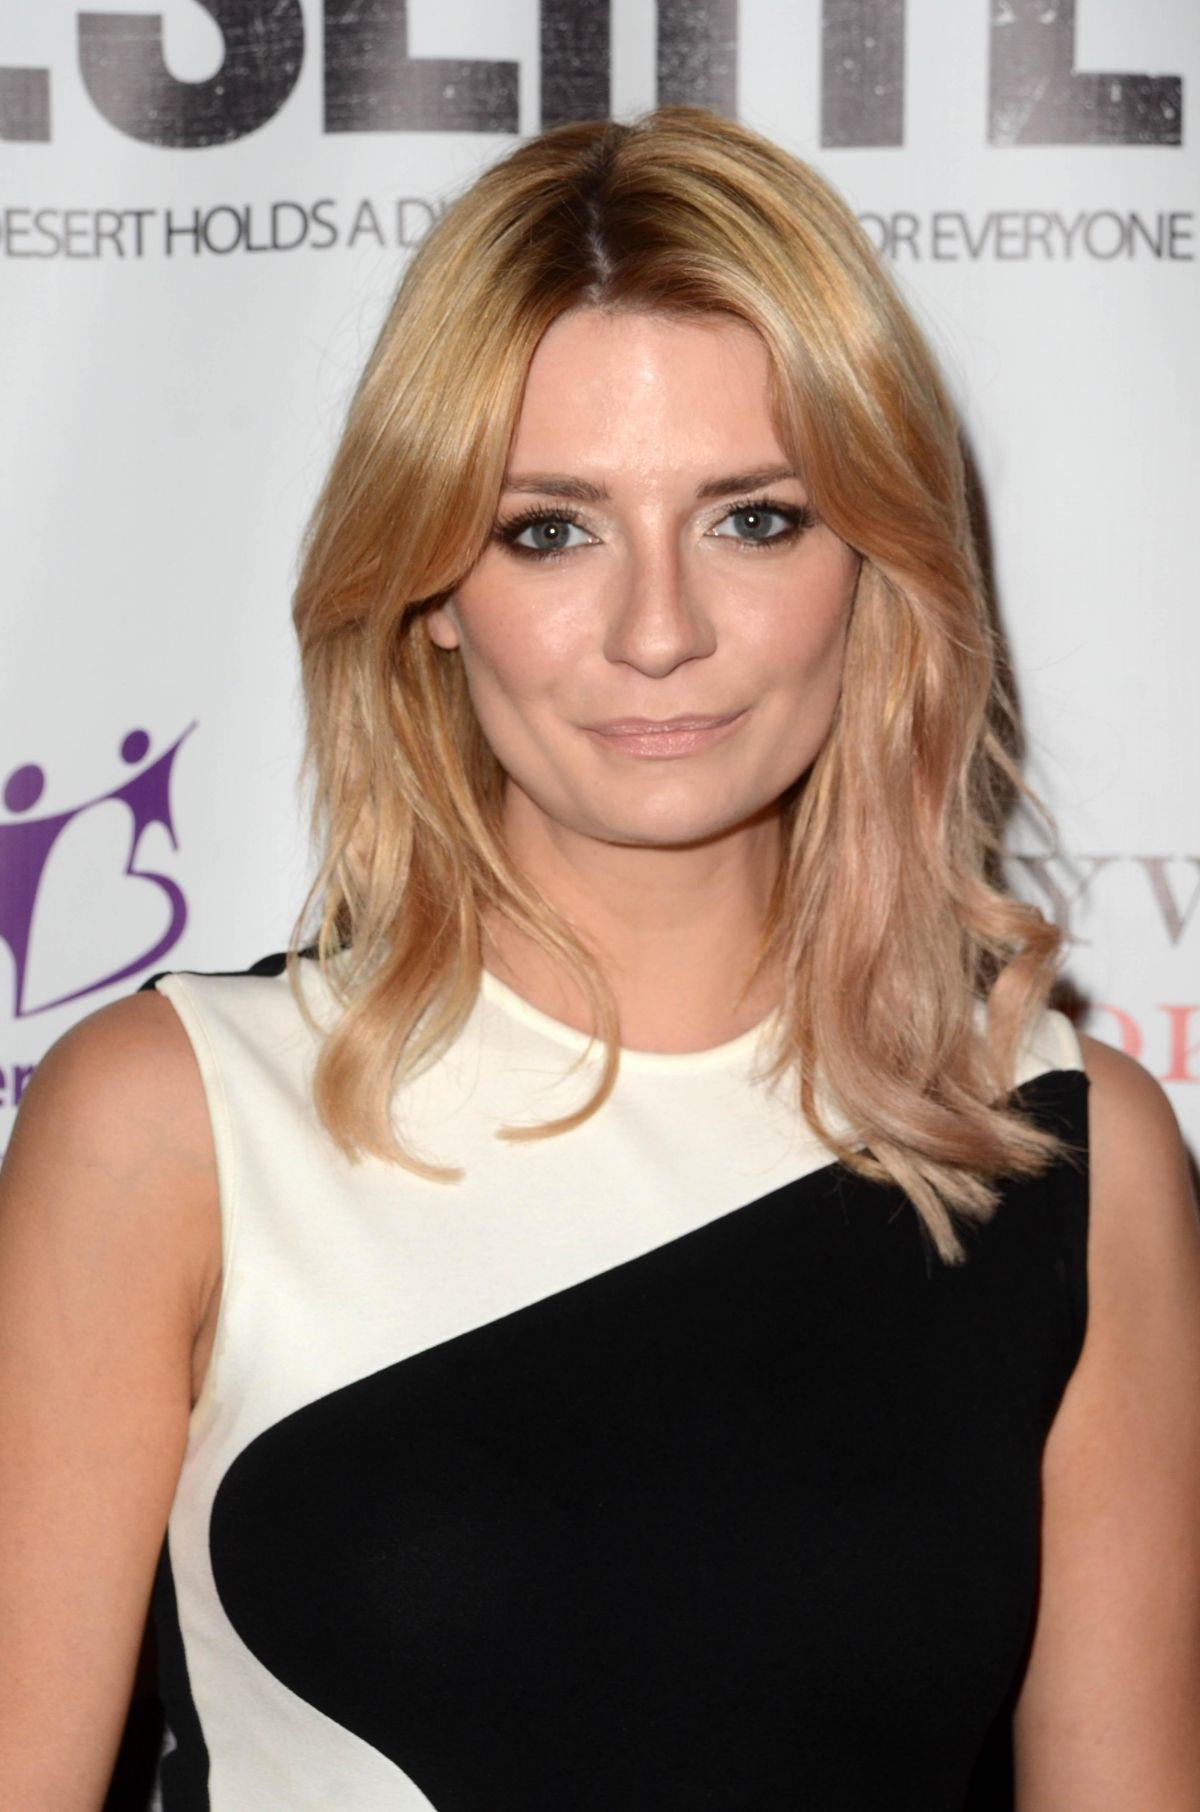 MISCHA BARTON at 'Deserted' Premiere in Westwood 10/06/2016 ...